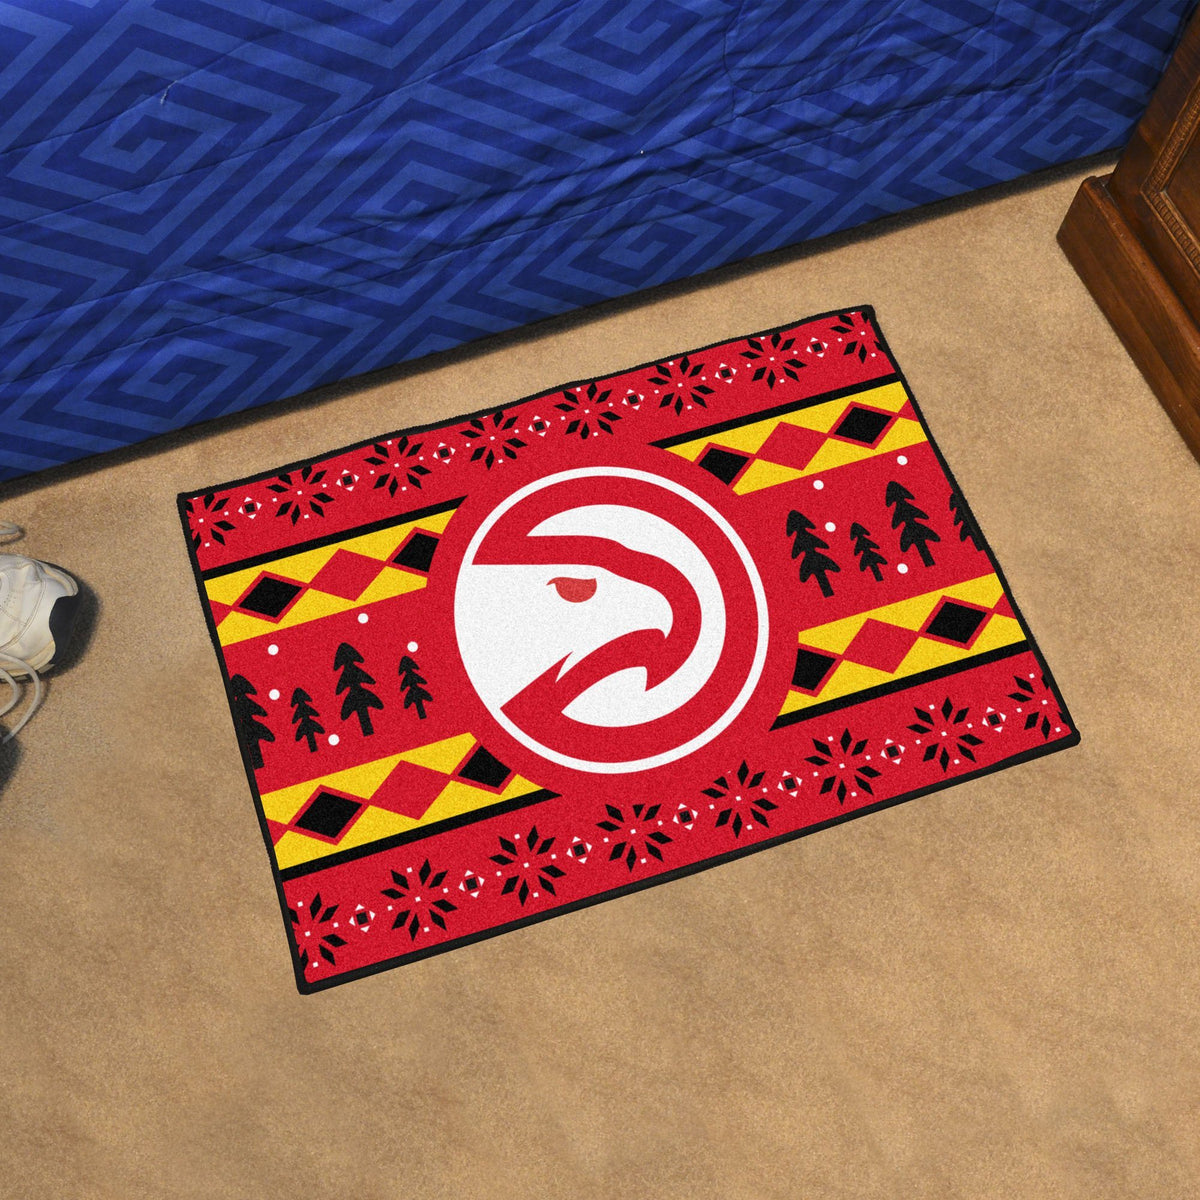 NBA - Holiday Sweater Starter Mat NBA Mats, Rectangular Mats, Holiday Sweater Starter Mat, NBA, Home Fan Mats Atlanta Hawks